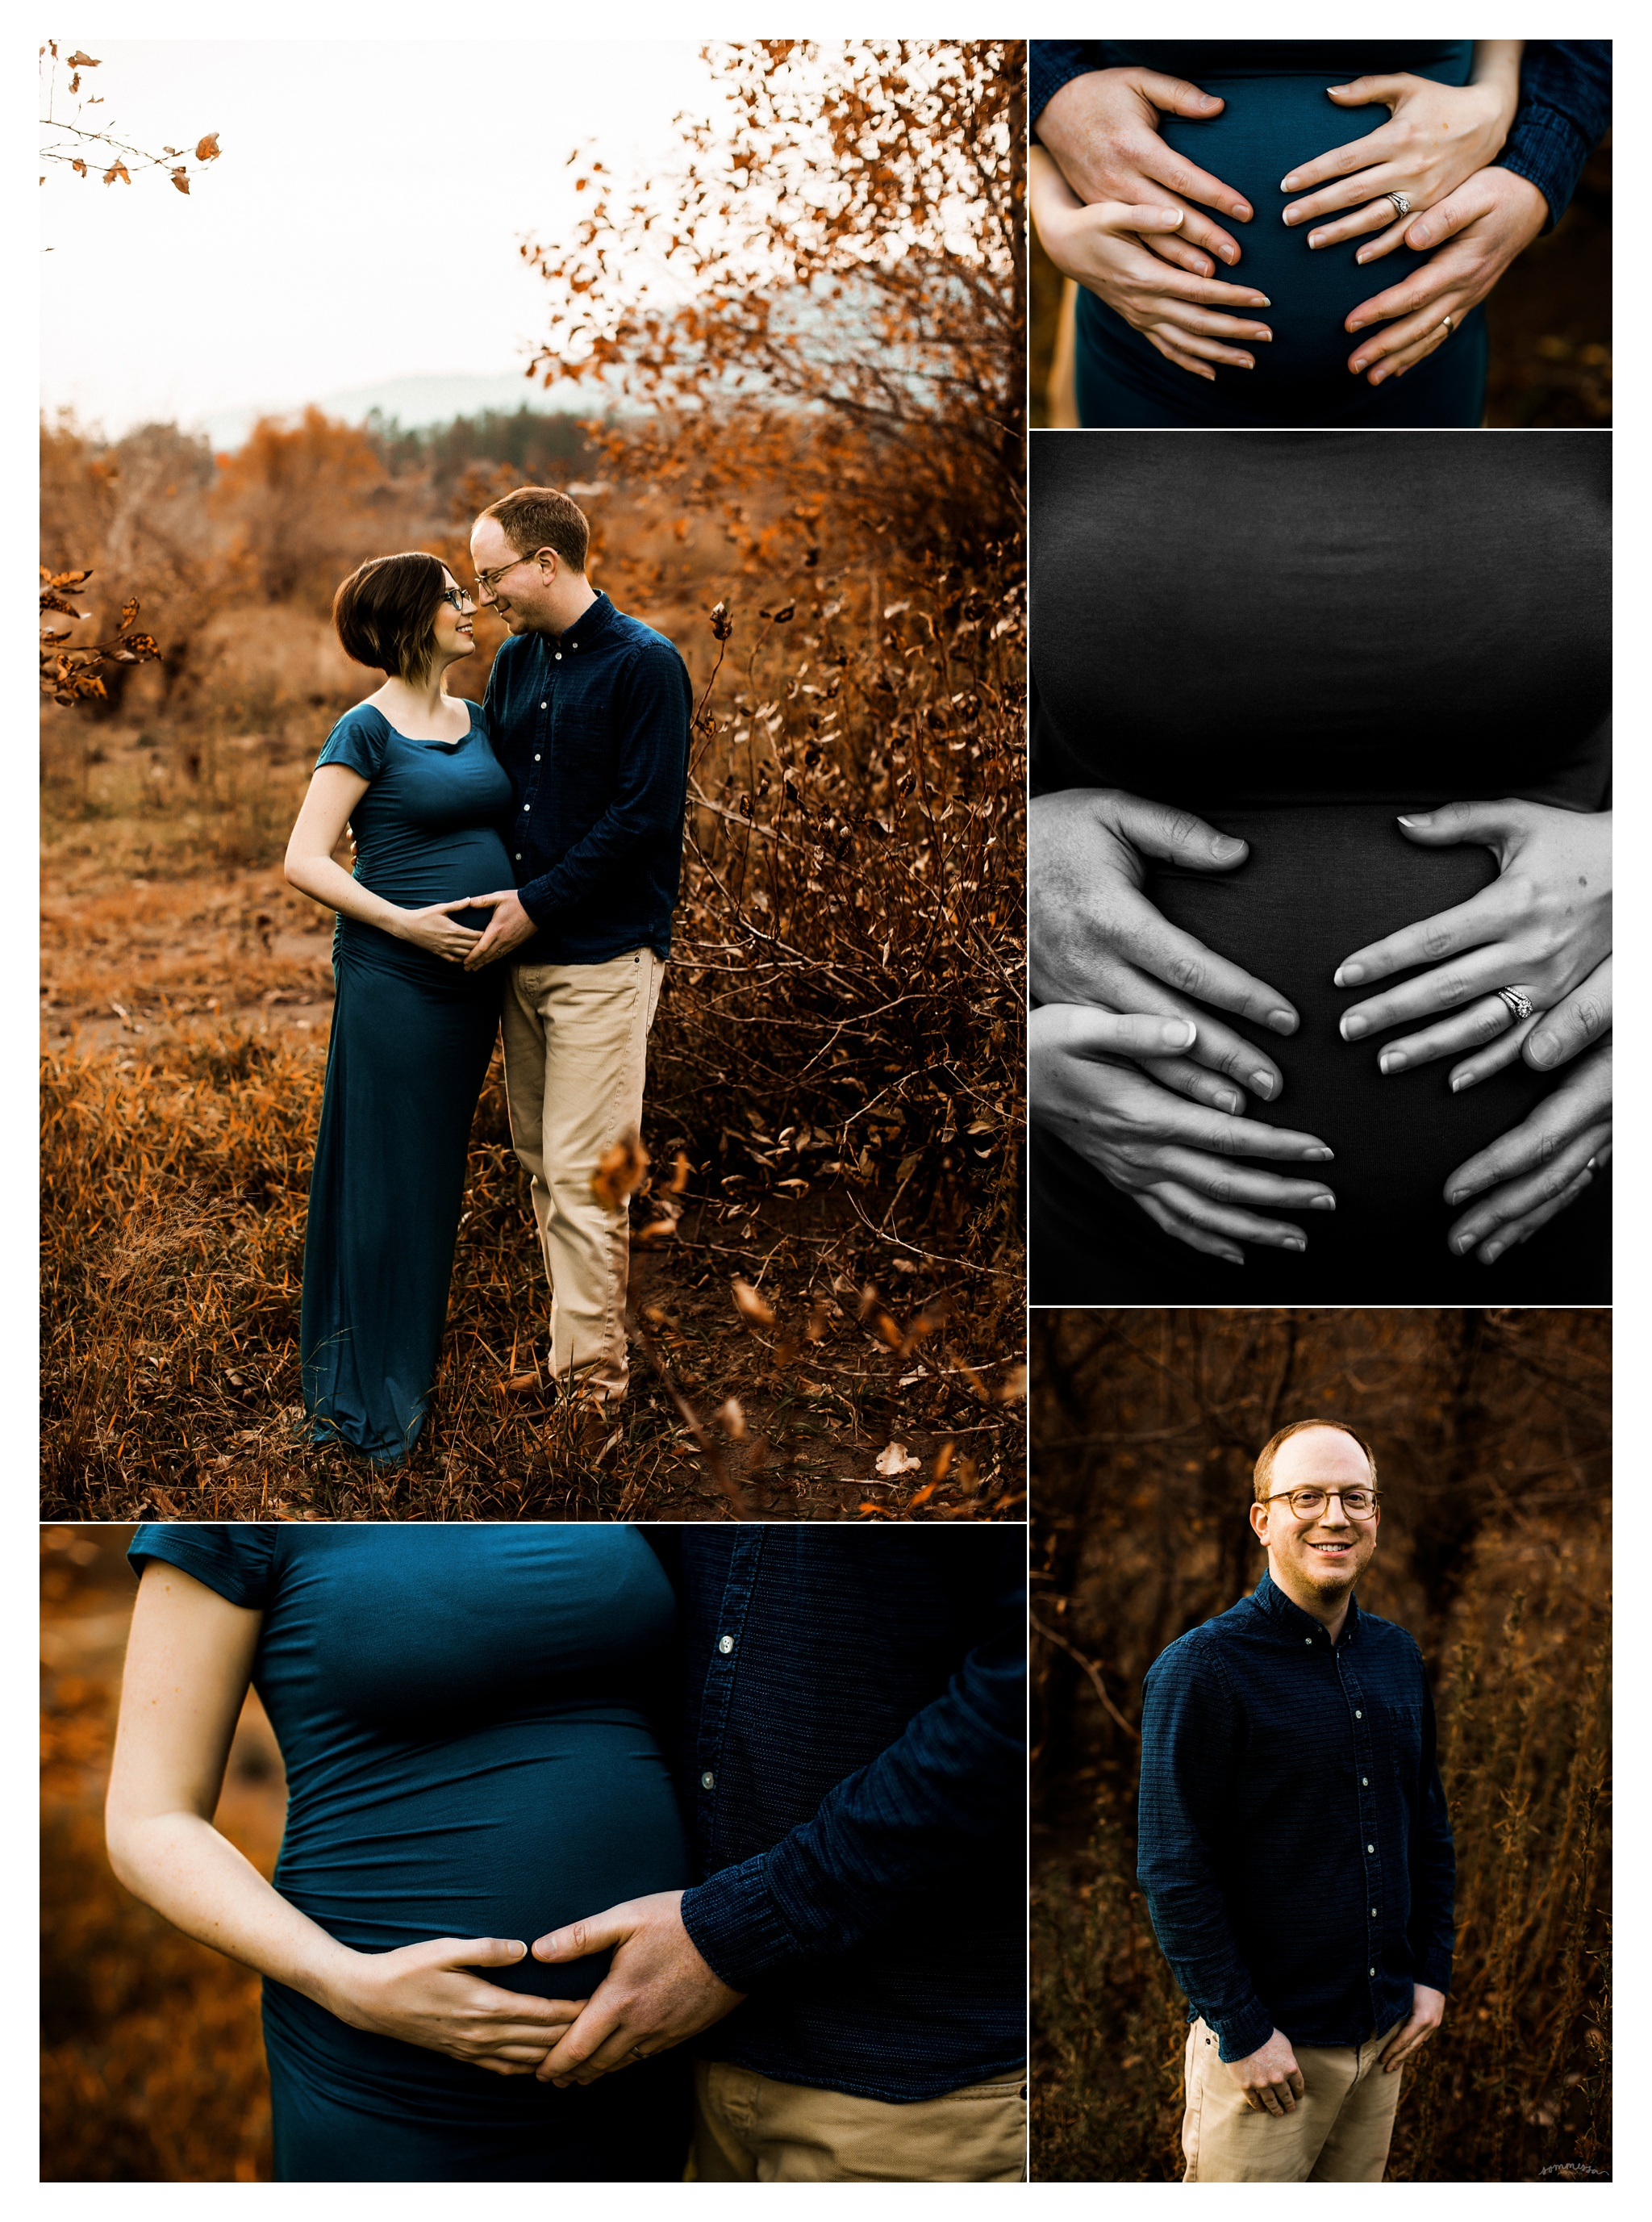 Maternity Photographer Portland, Oregon Sommessa_2563.jpg